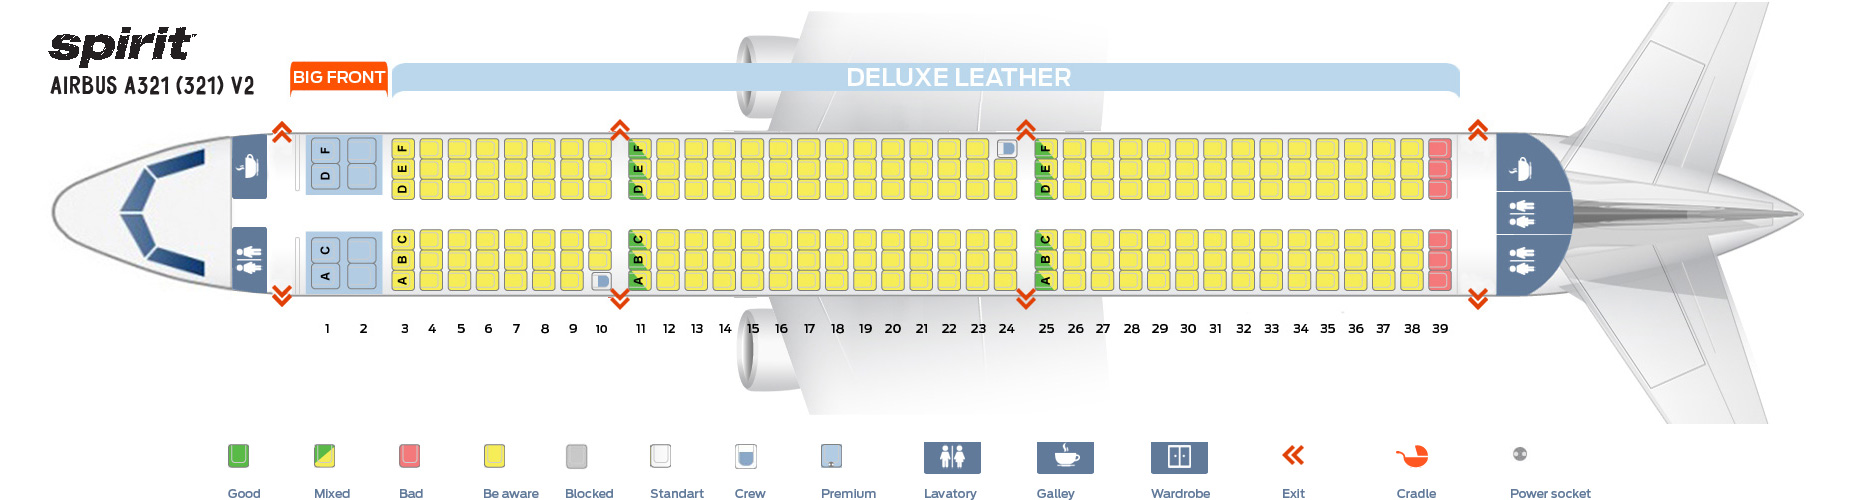 Seat Map Airbus A321-200 V2 Spirit Airlines